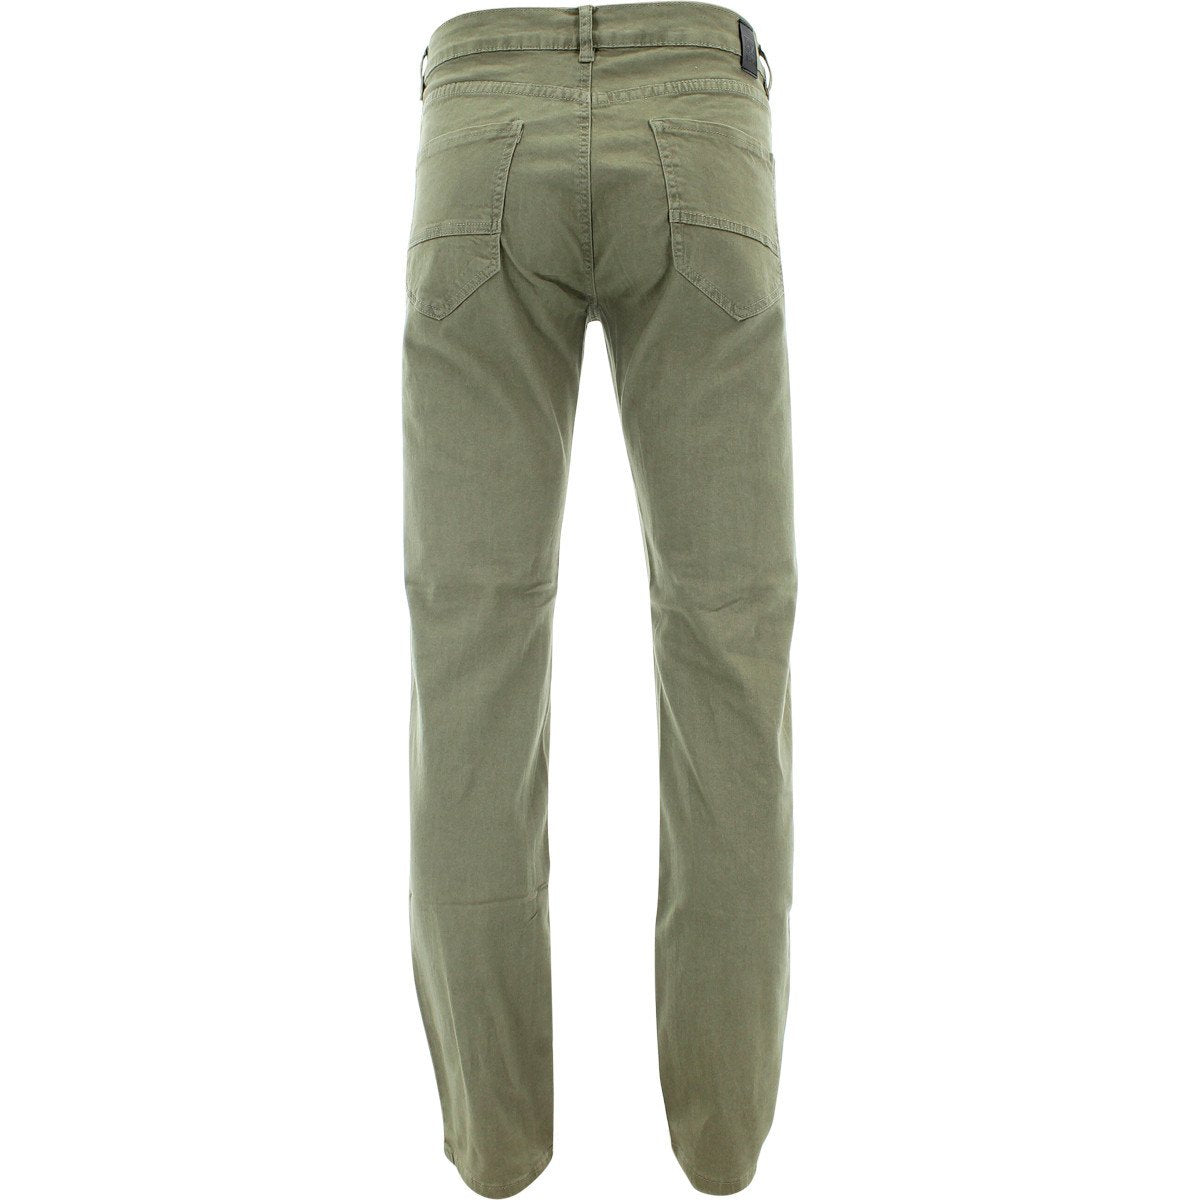 Azazel - Men's Twill Pants - Light Khaki - V.I.M. - 2